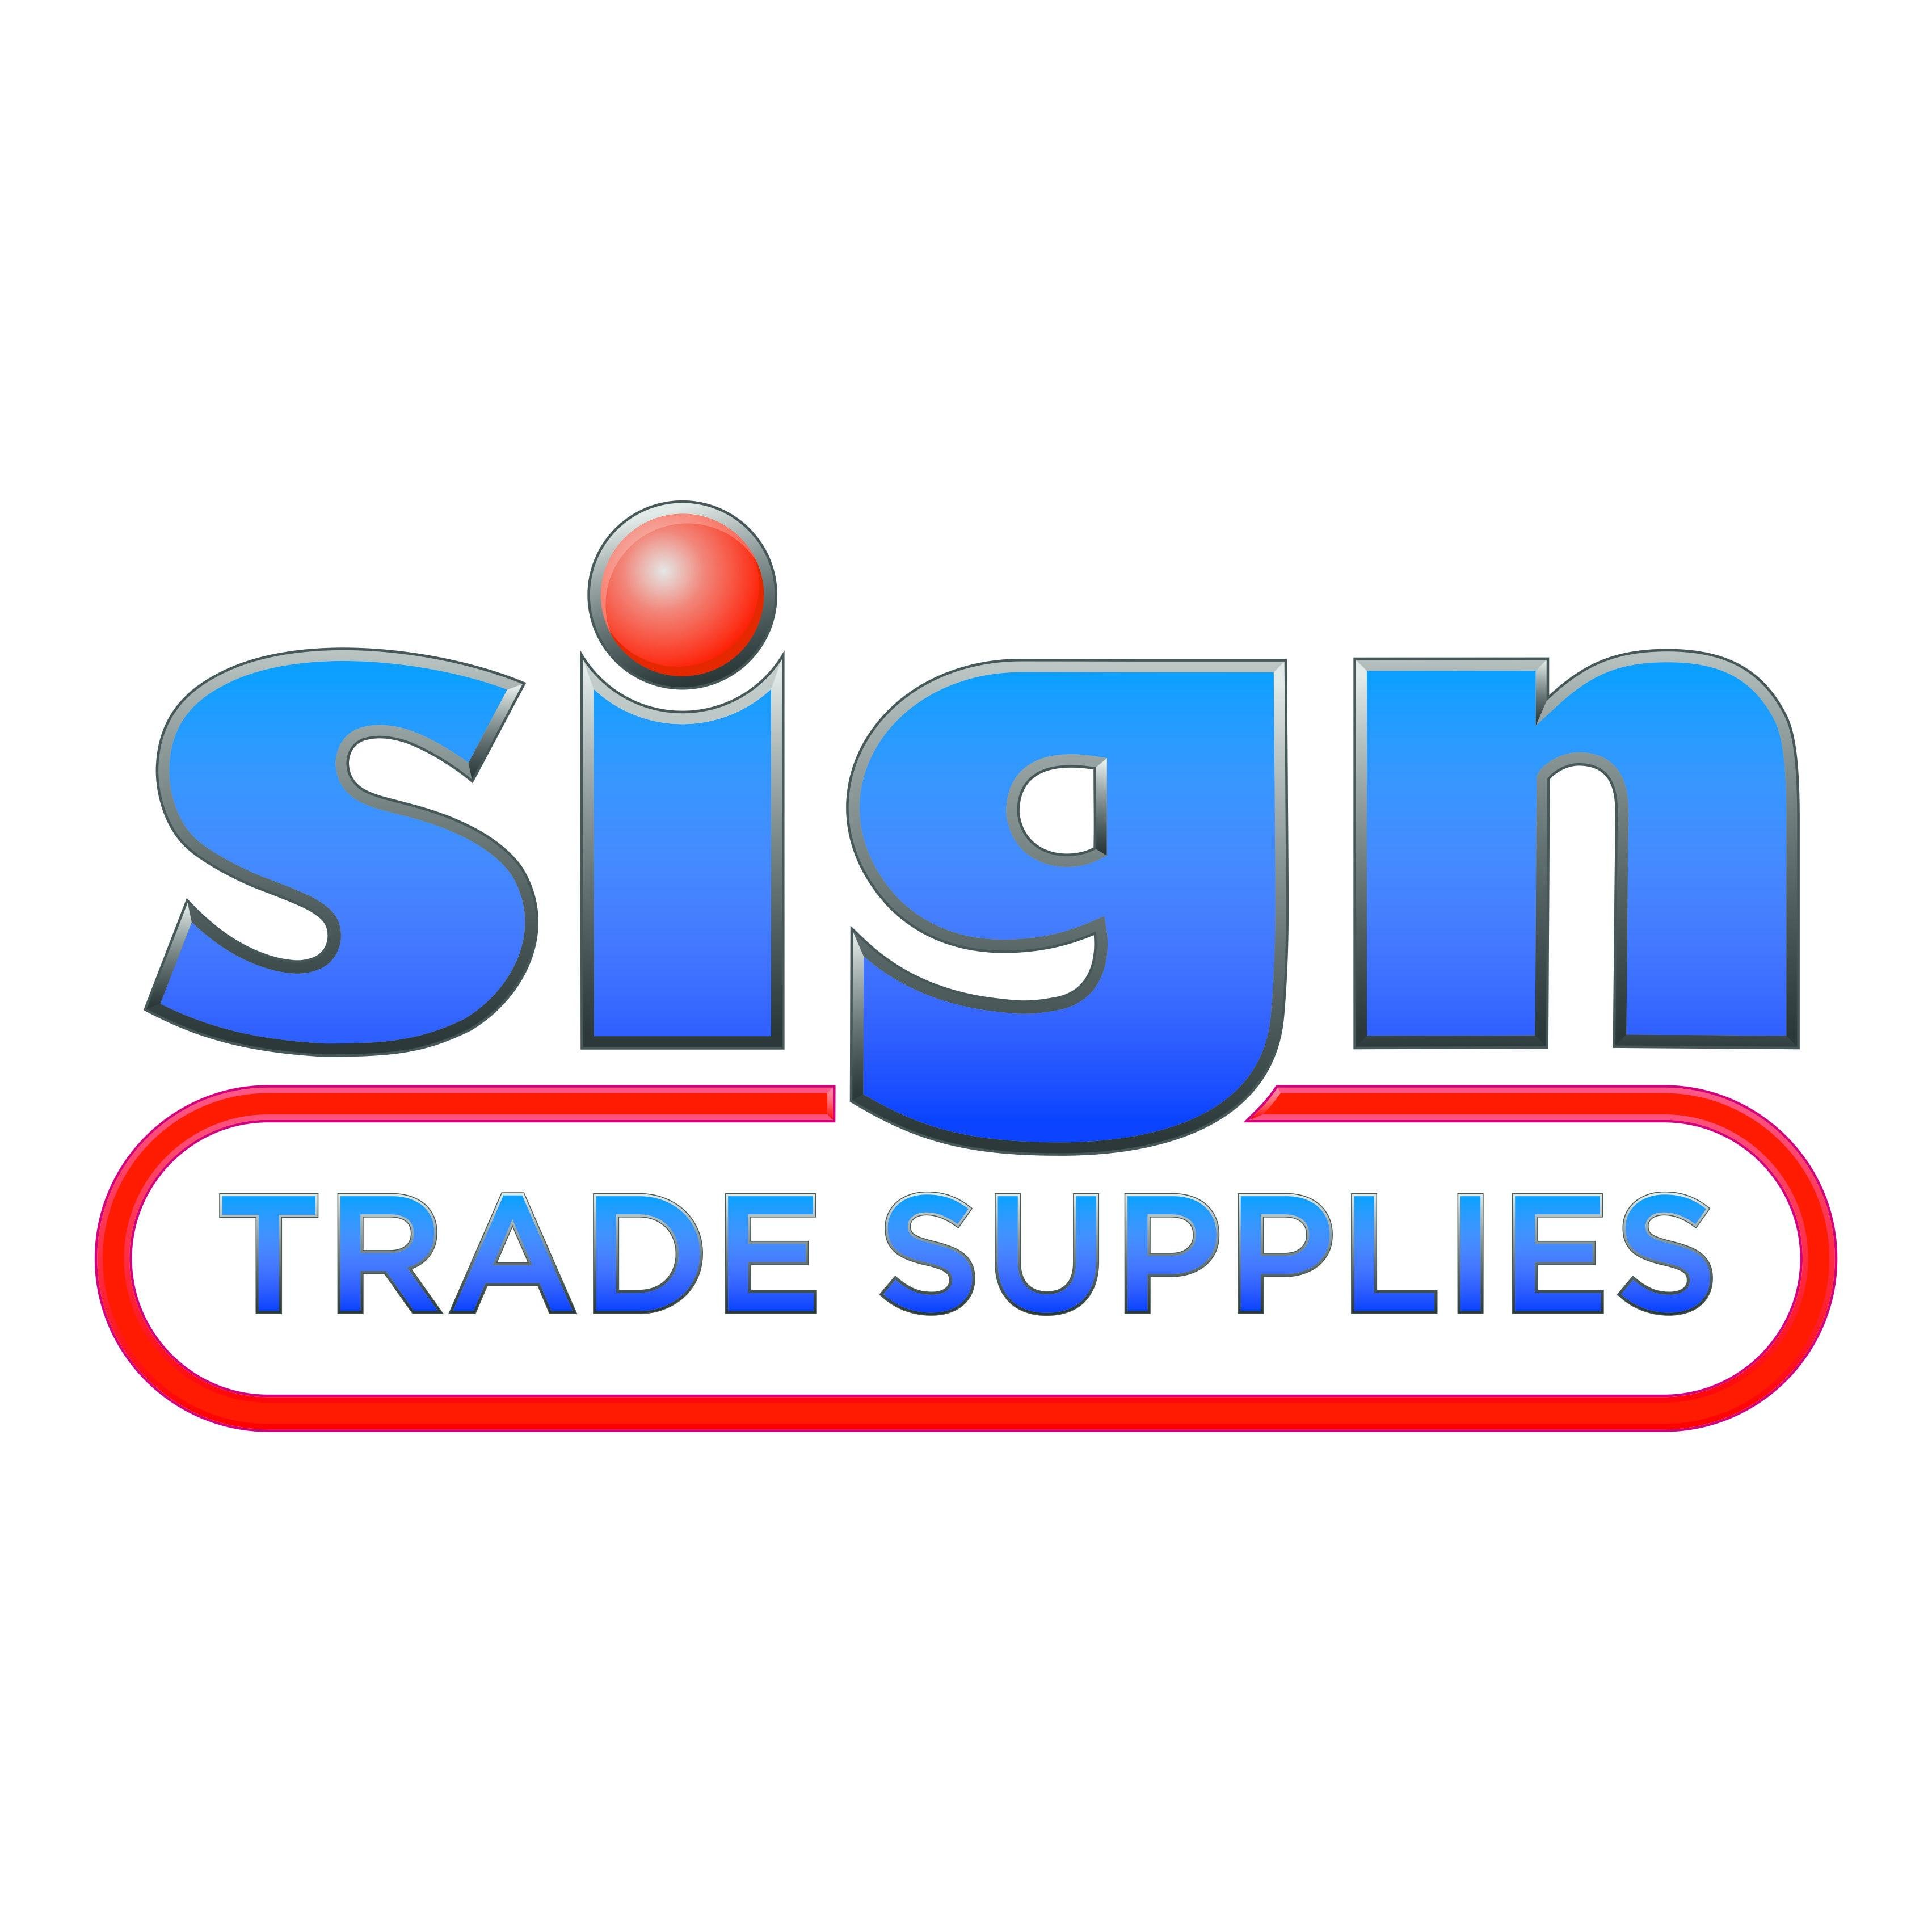 Sign Trade Supplies (@signtradesupply)  Twitter. Credit Card Processor Companies. What Does A School Psychologist Do. It Solutions For Healthcare Mt Clemens Dodge. Verizon Fios Promotional Code. Samsung Scx4100 Printer Ios Developer Software. Pittsburgh Business Schools Price Of Malibu. Meaningful Use Registration Pmp Online Class. Eagent Farmers Insurance Best Yoga On Youtube